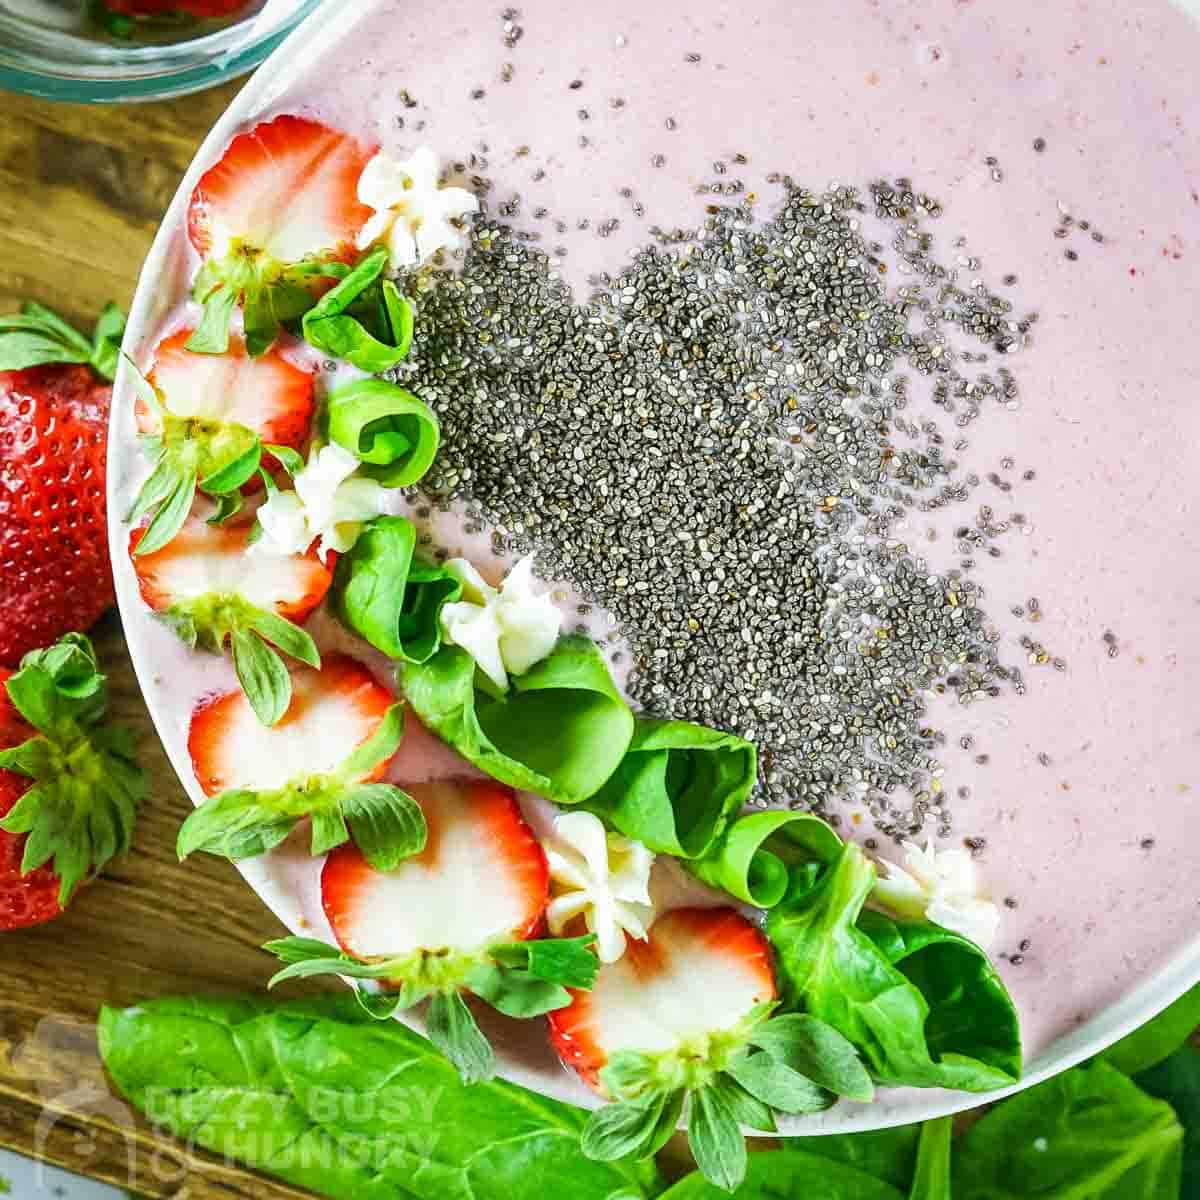 Overhead shot of pink smoothie bowl garnished with flax seeds, sliced strawberries, and mint rolls on a wooden surface with more mint and strawberries on the side.